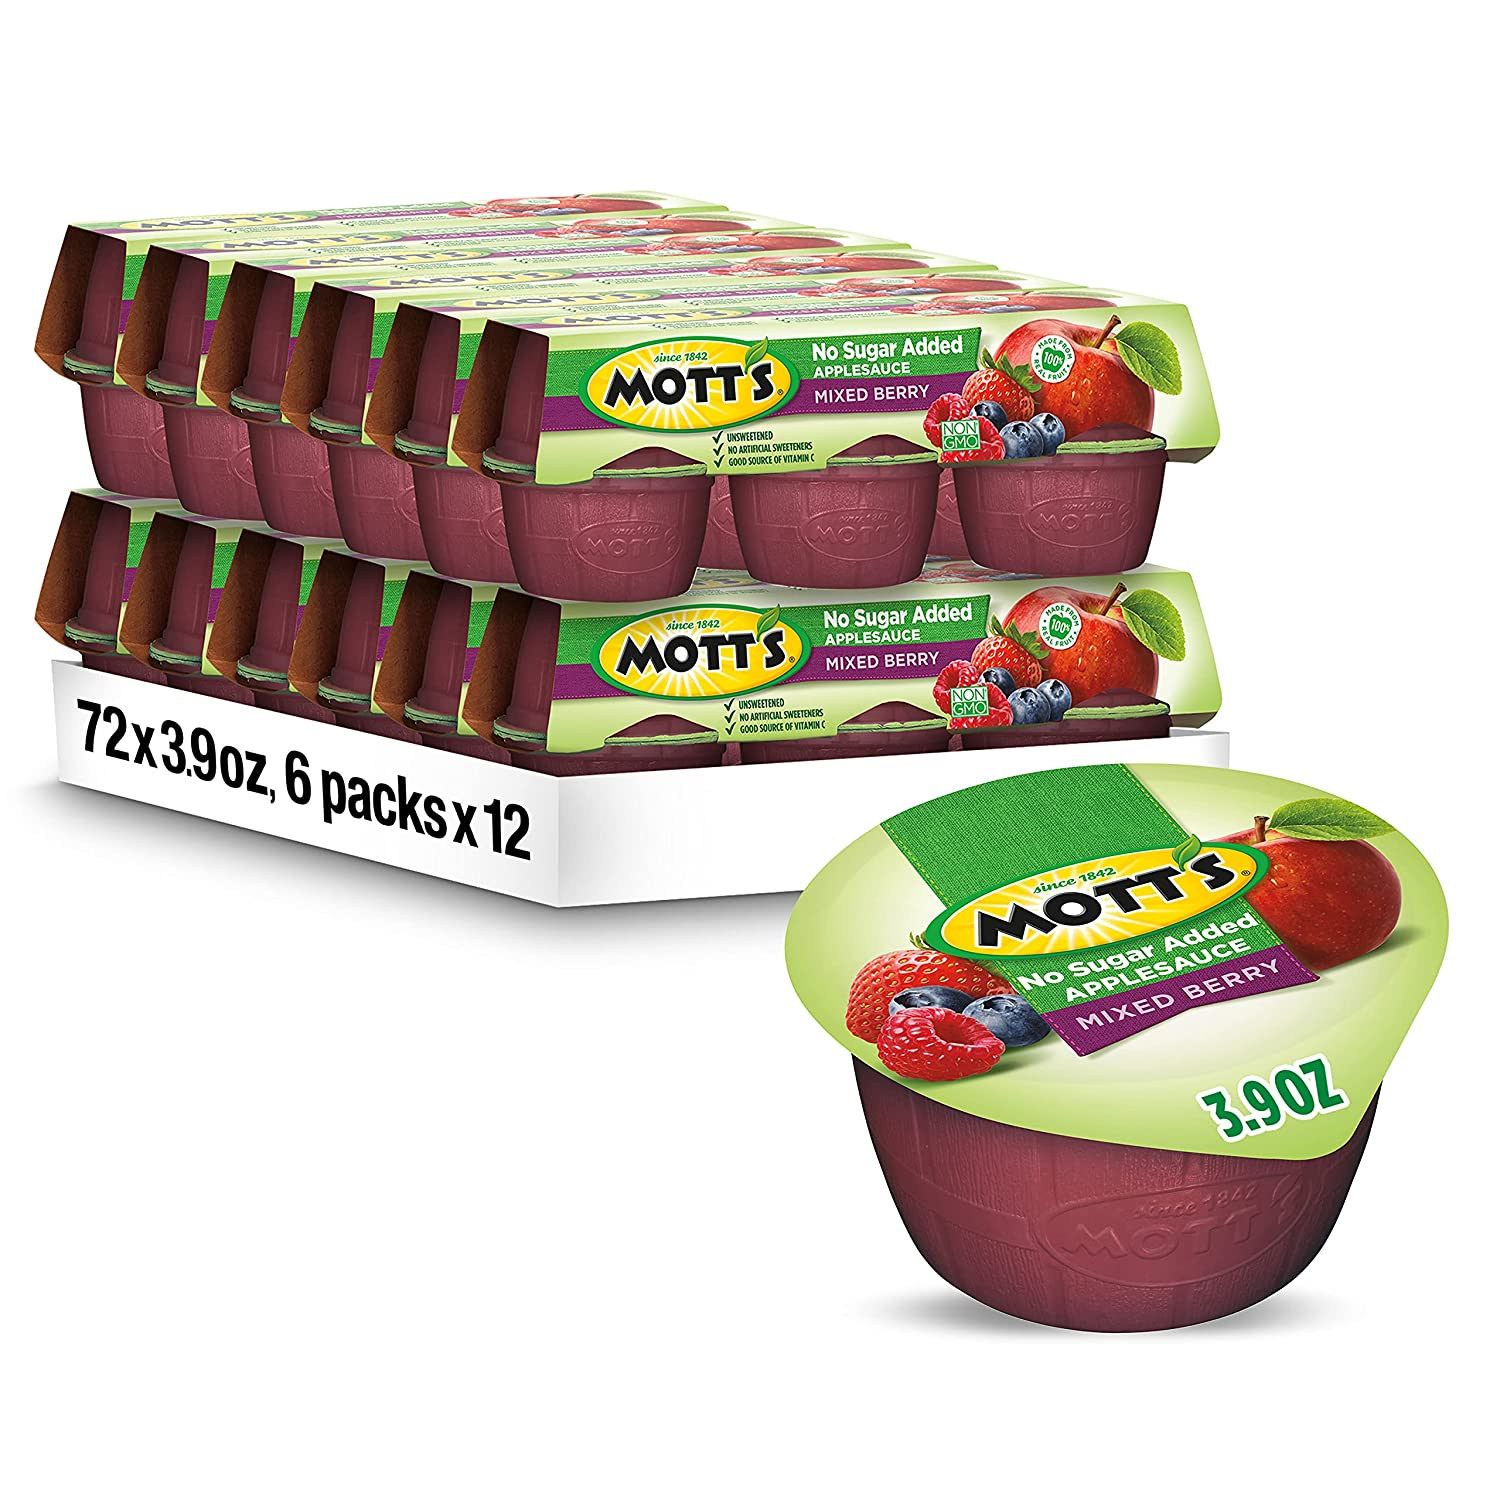 Mott's Sauce-Country Berry (3.9-Ounce Cups), 6-Count Packages (Pack of 12)